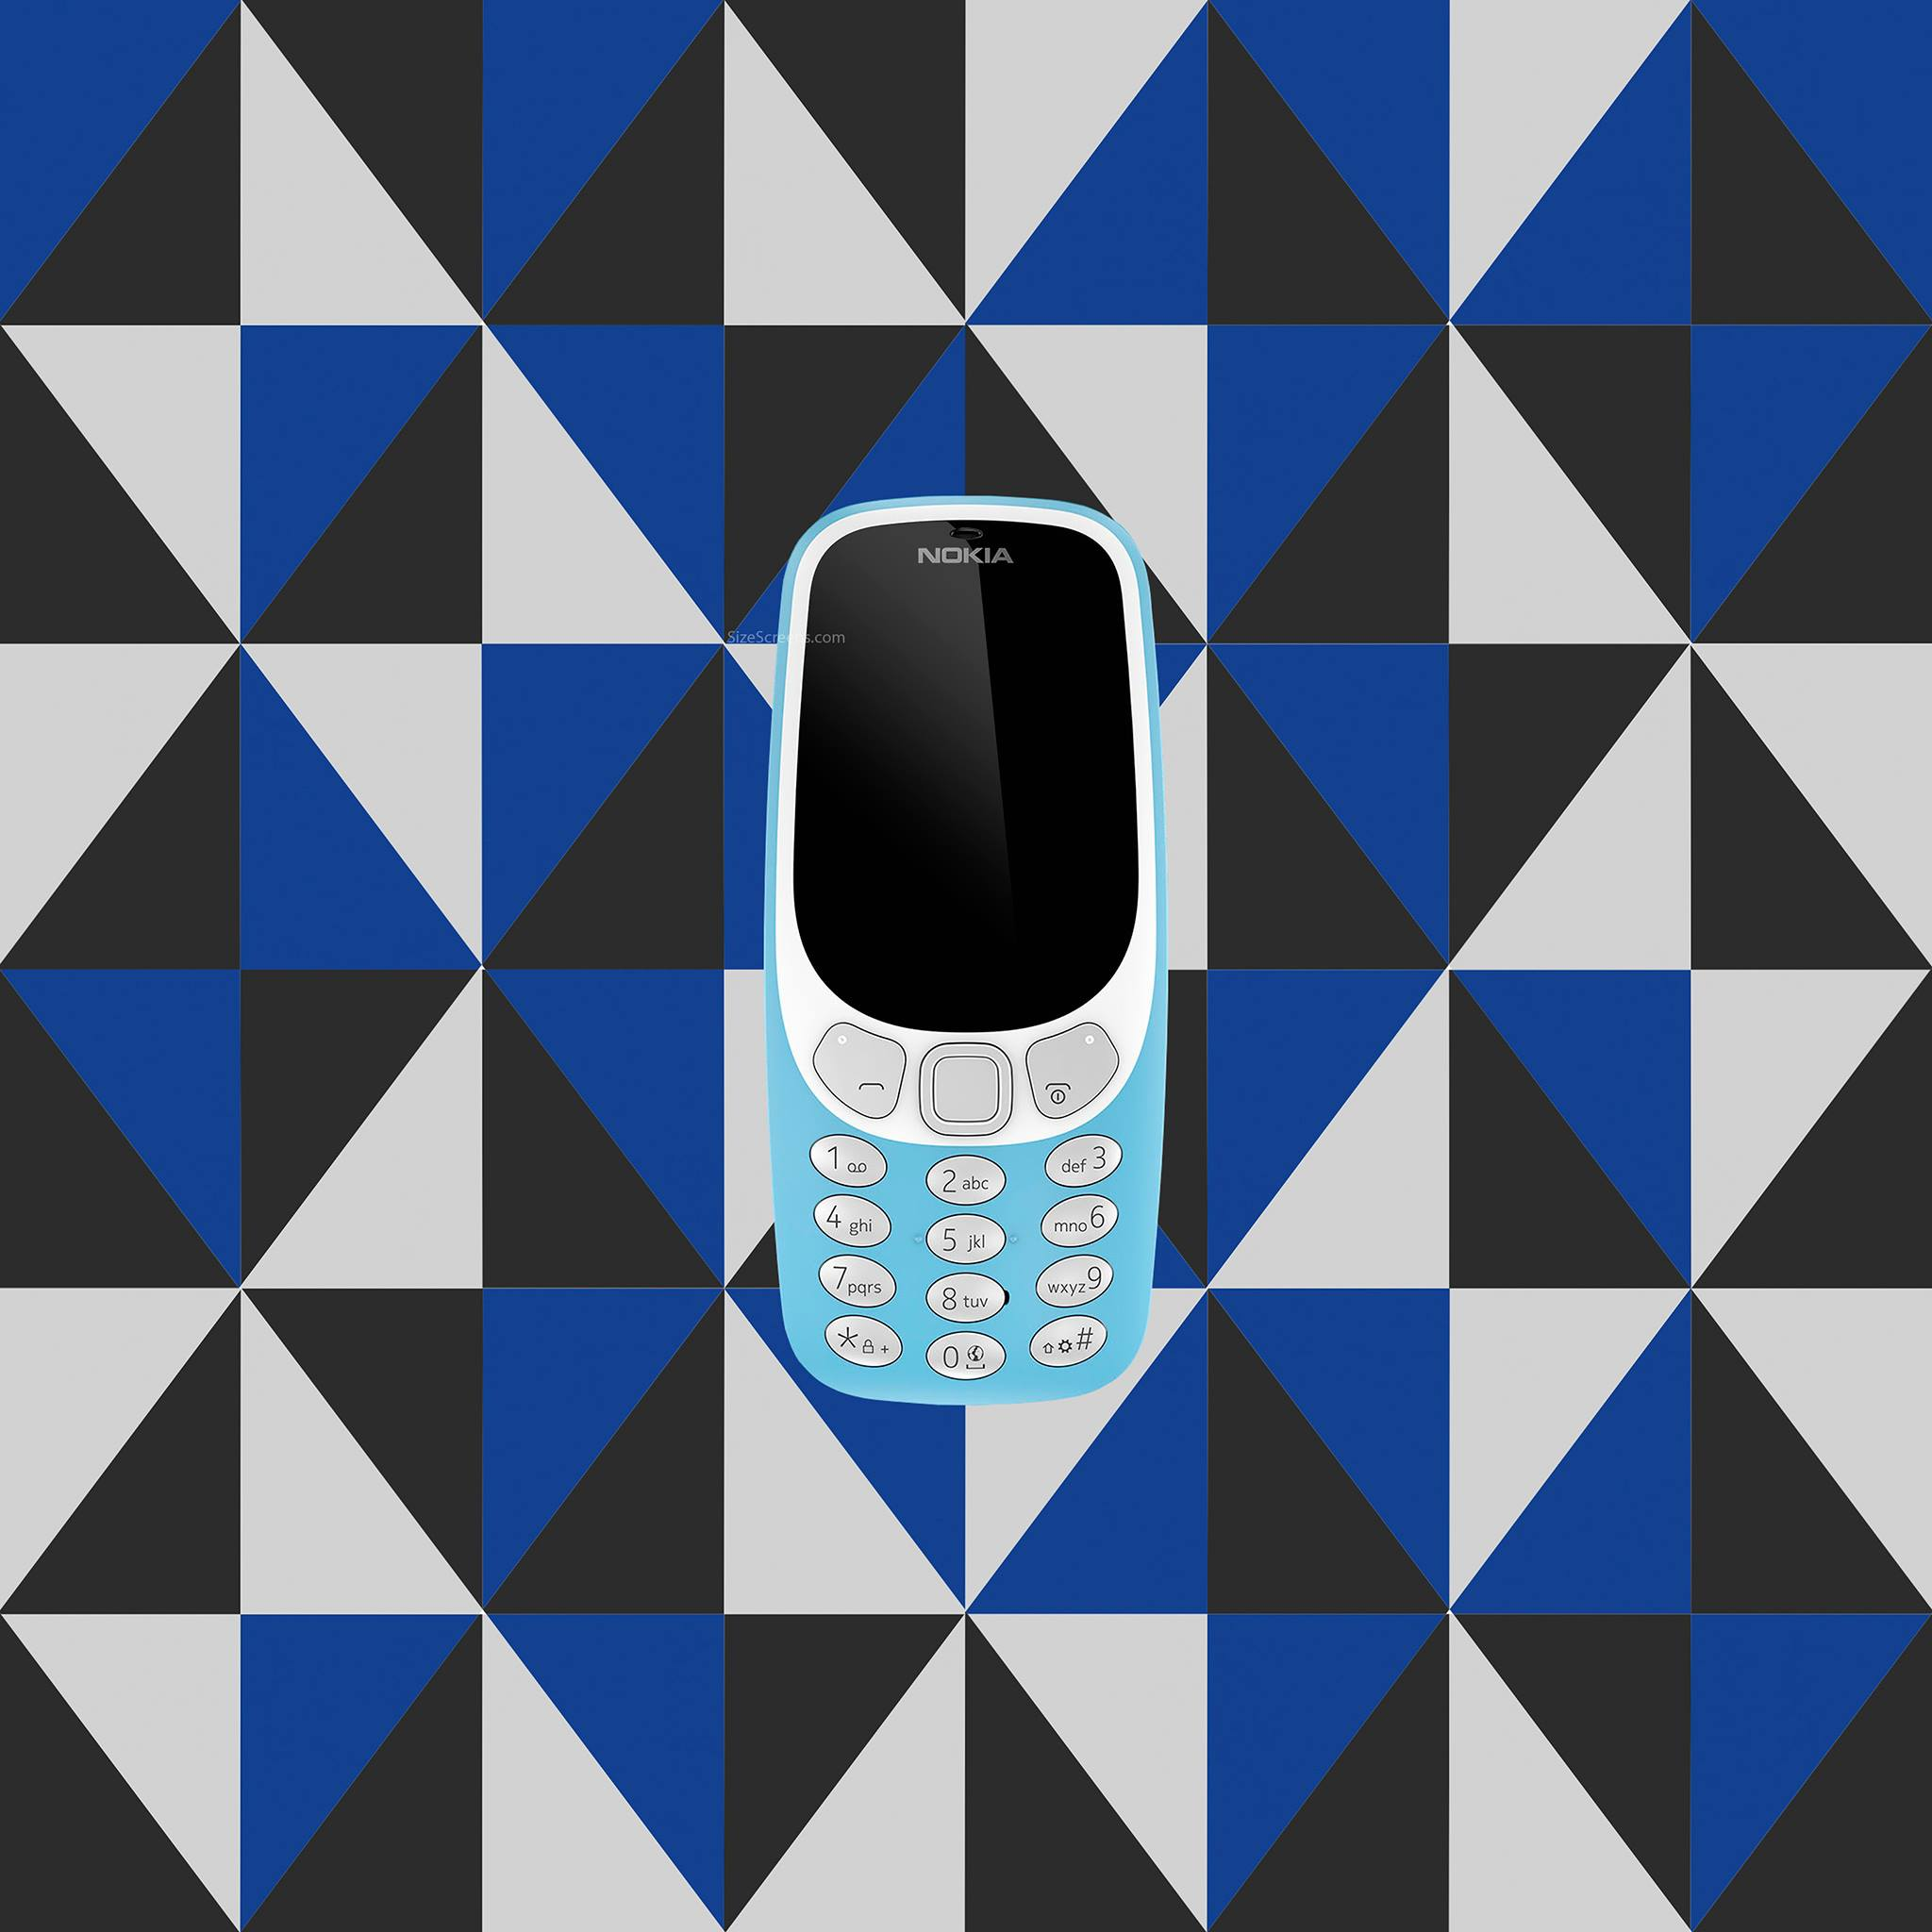 Nokia 3310 3g Screen Specifications Sizescreens Com